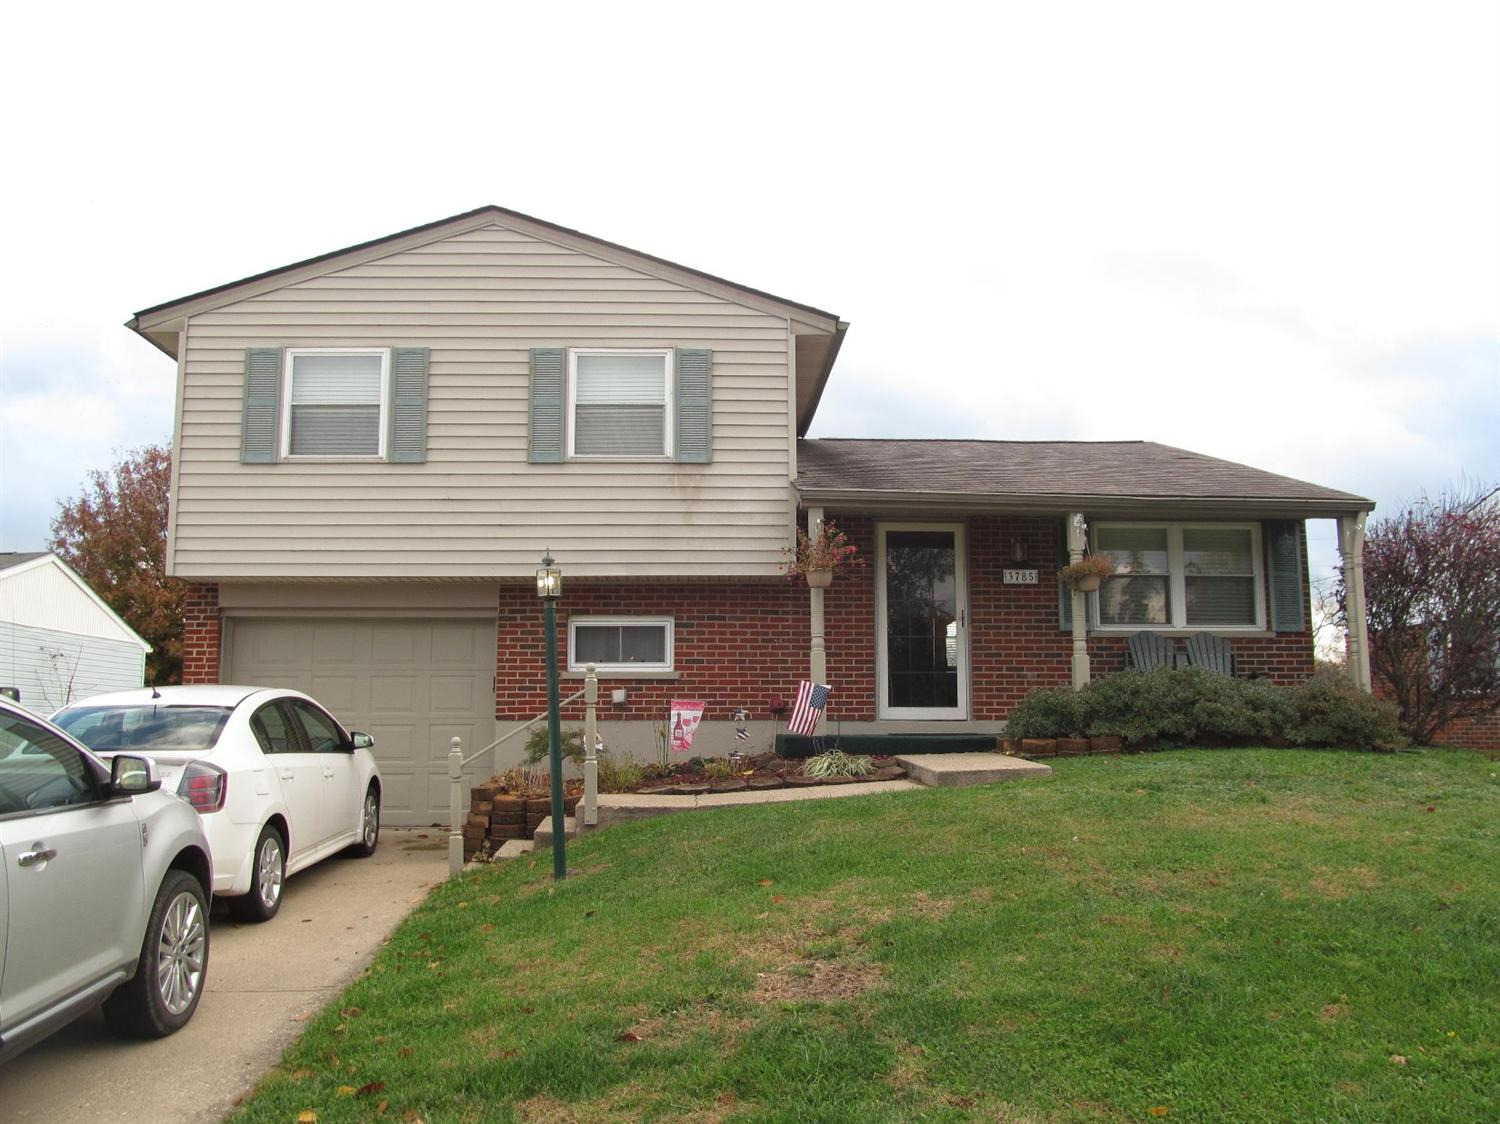 Photo 1 for 3785 Harvest Way Elsmere, KY 41018